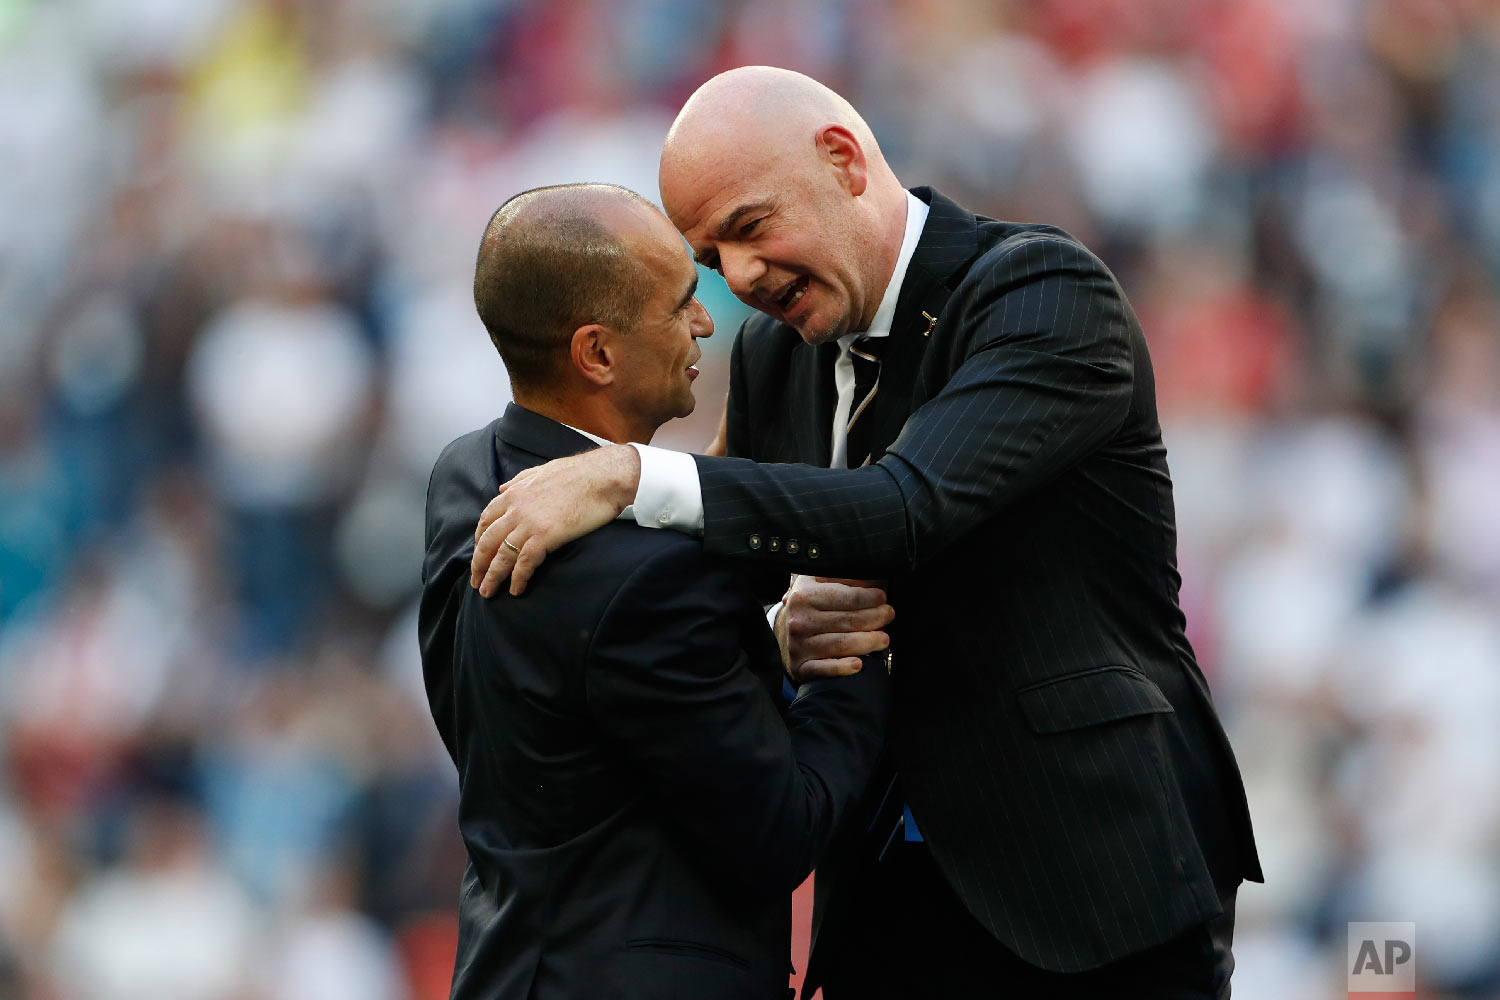 FIFA President Gianni Infantino, right, talks to Belgium coach Roberto Martinez after the third place match between England and Belgium at the 2018 soccer World Cup in the St. Petersburg Stadium in St. Petersburg, Russia, Saturday, July 14, 2018. (AP Photo/Natacha Pisarenko)